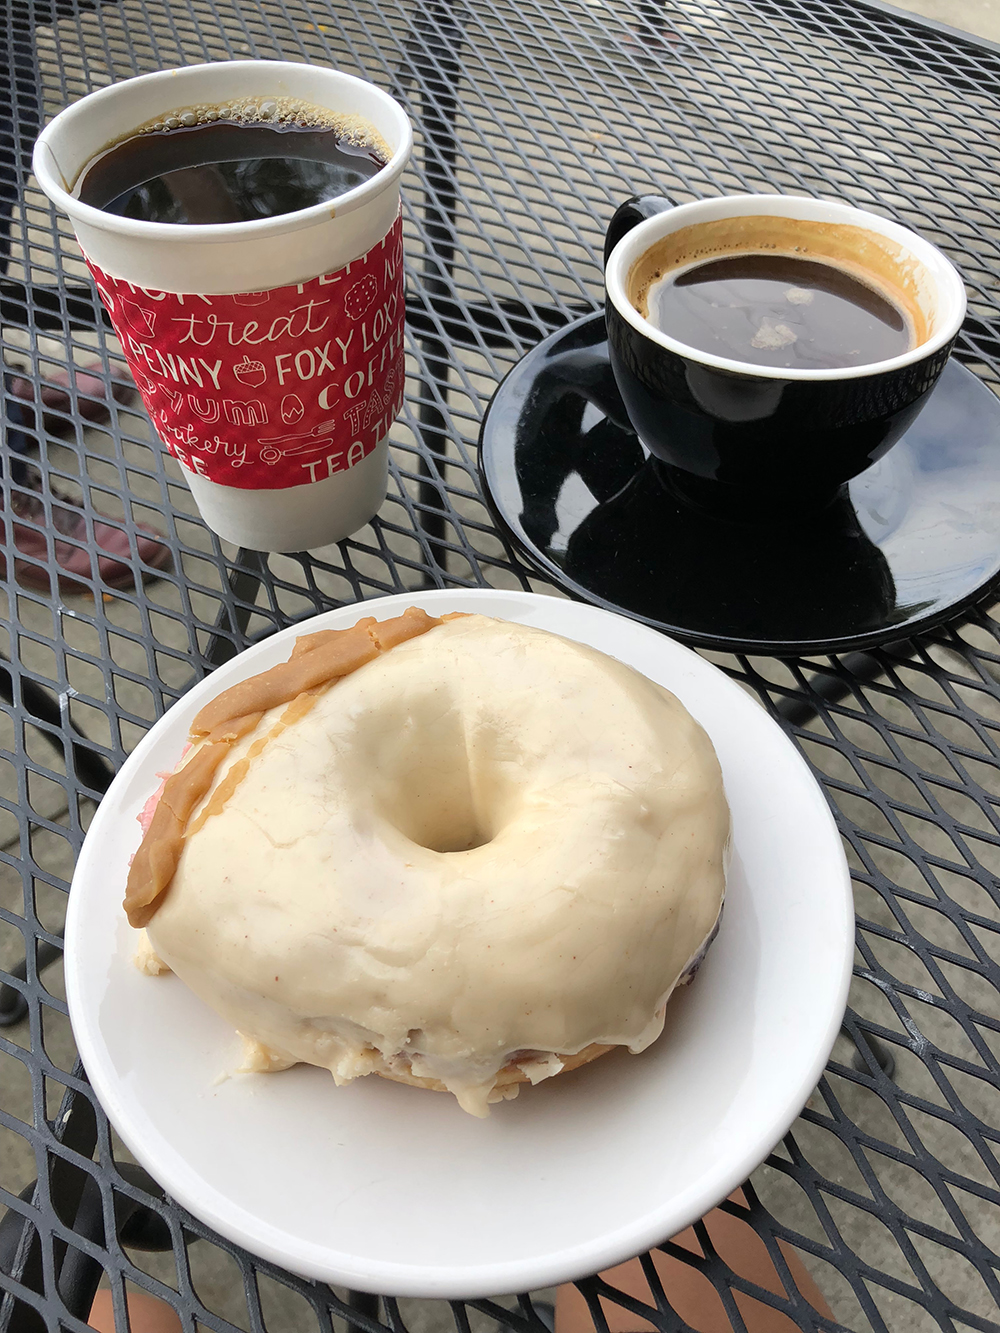 vegan donut from Henny Penny Cafe